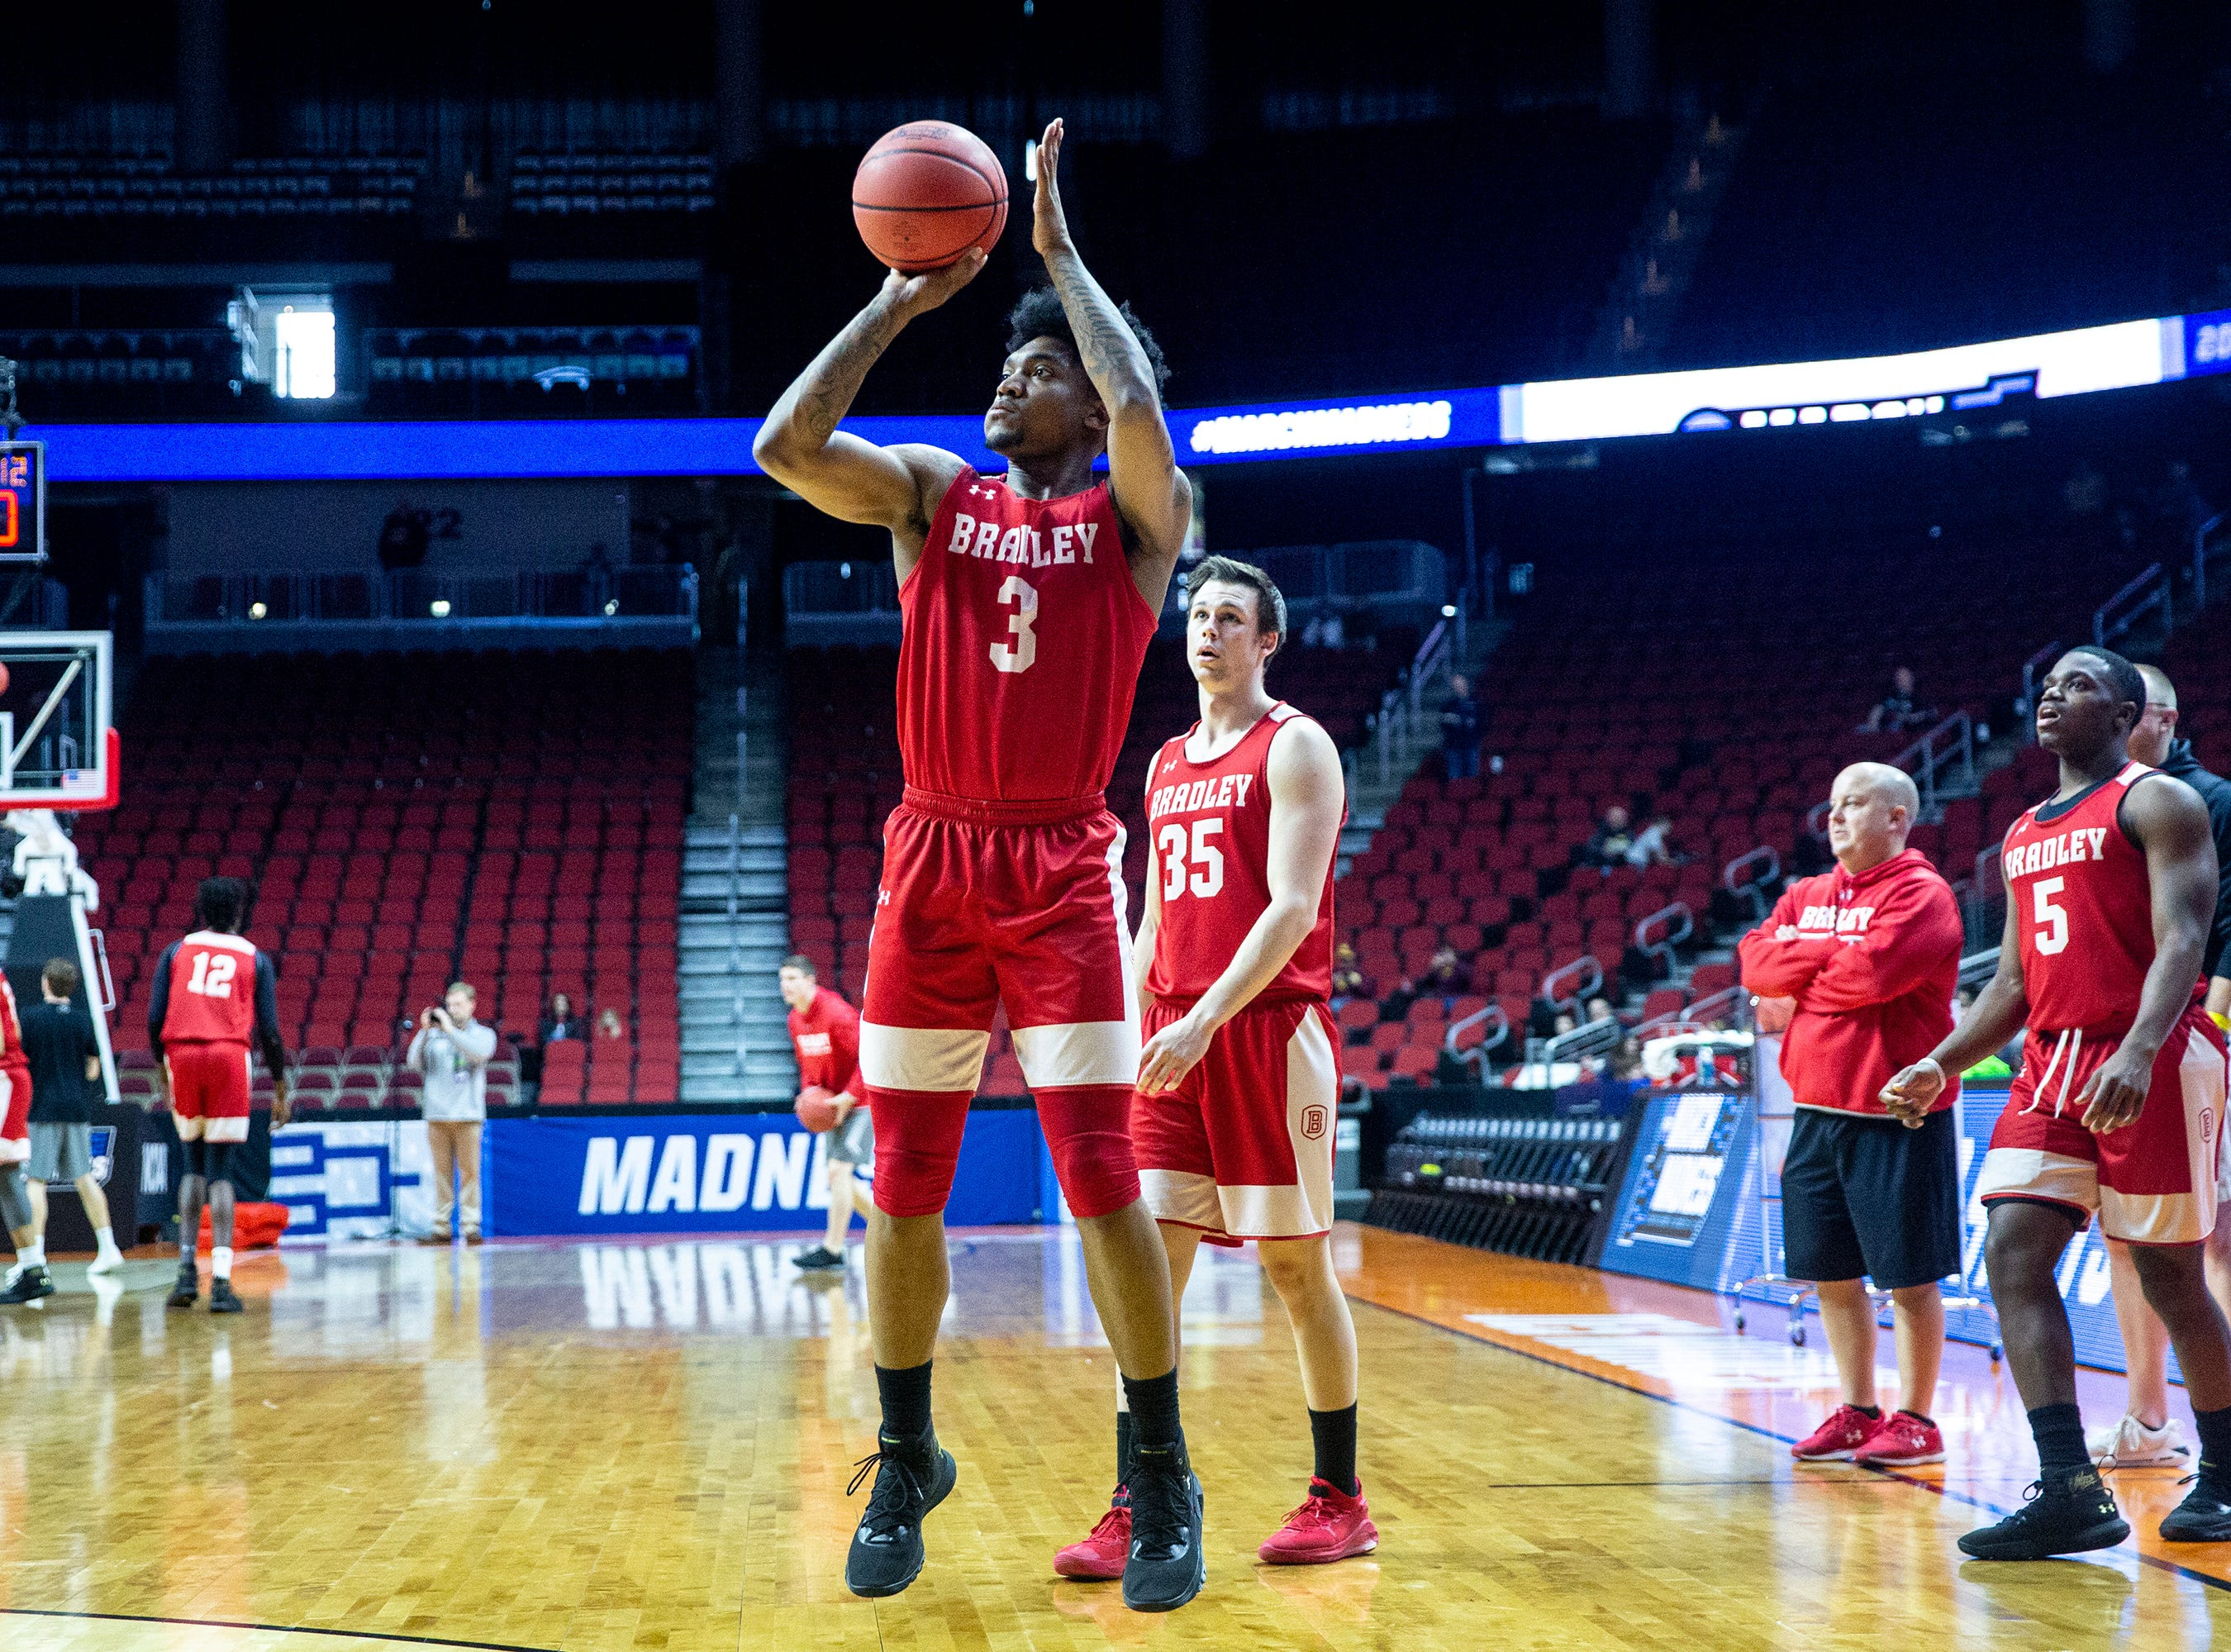 Bradley's Antoine Pittman  shoots the ball during Bradley's open practice before the first round of the NCAA Men's Basketball Tournament on Wednesday, March 20, 2019, at Wells Fargo Arena in Des Moines, Iowa.